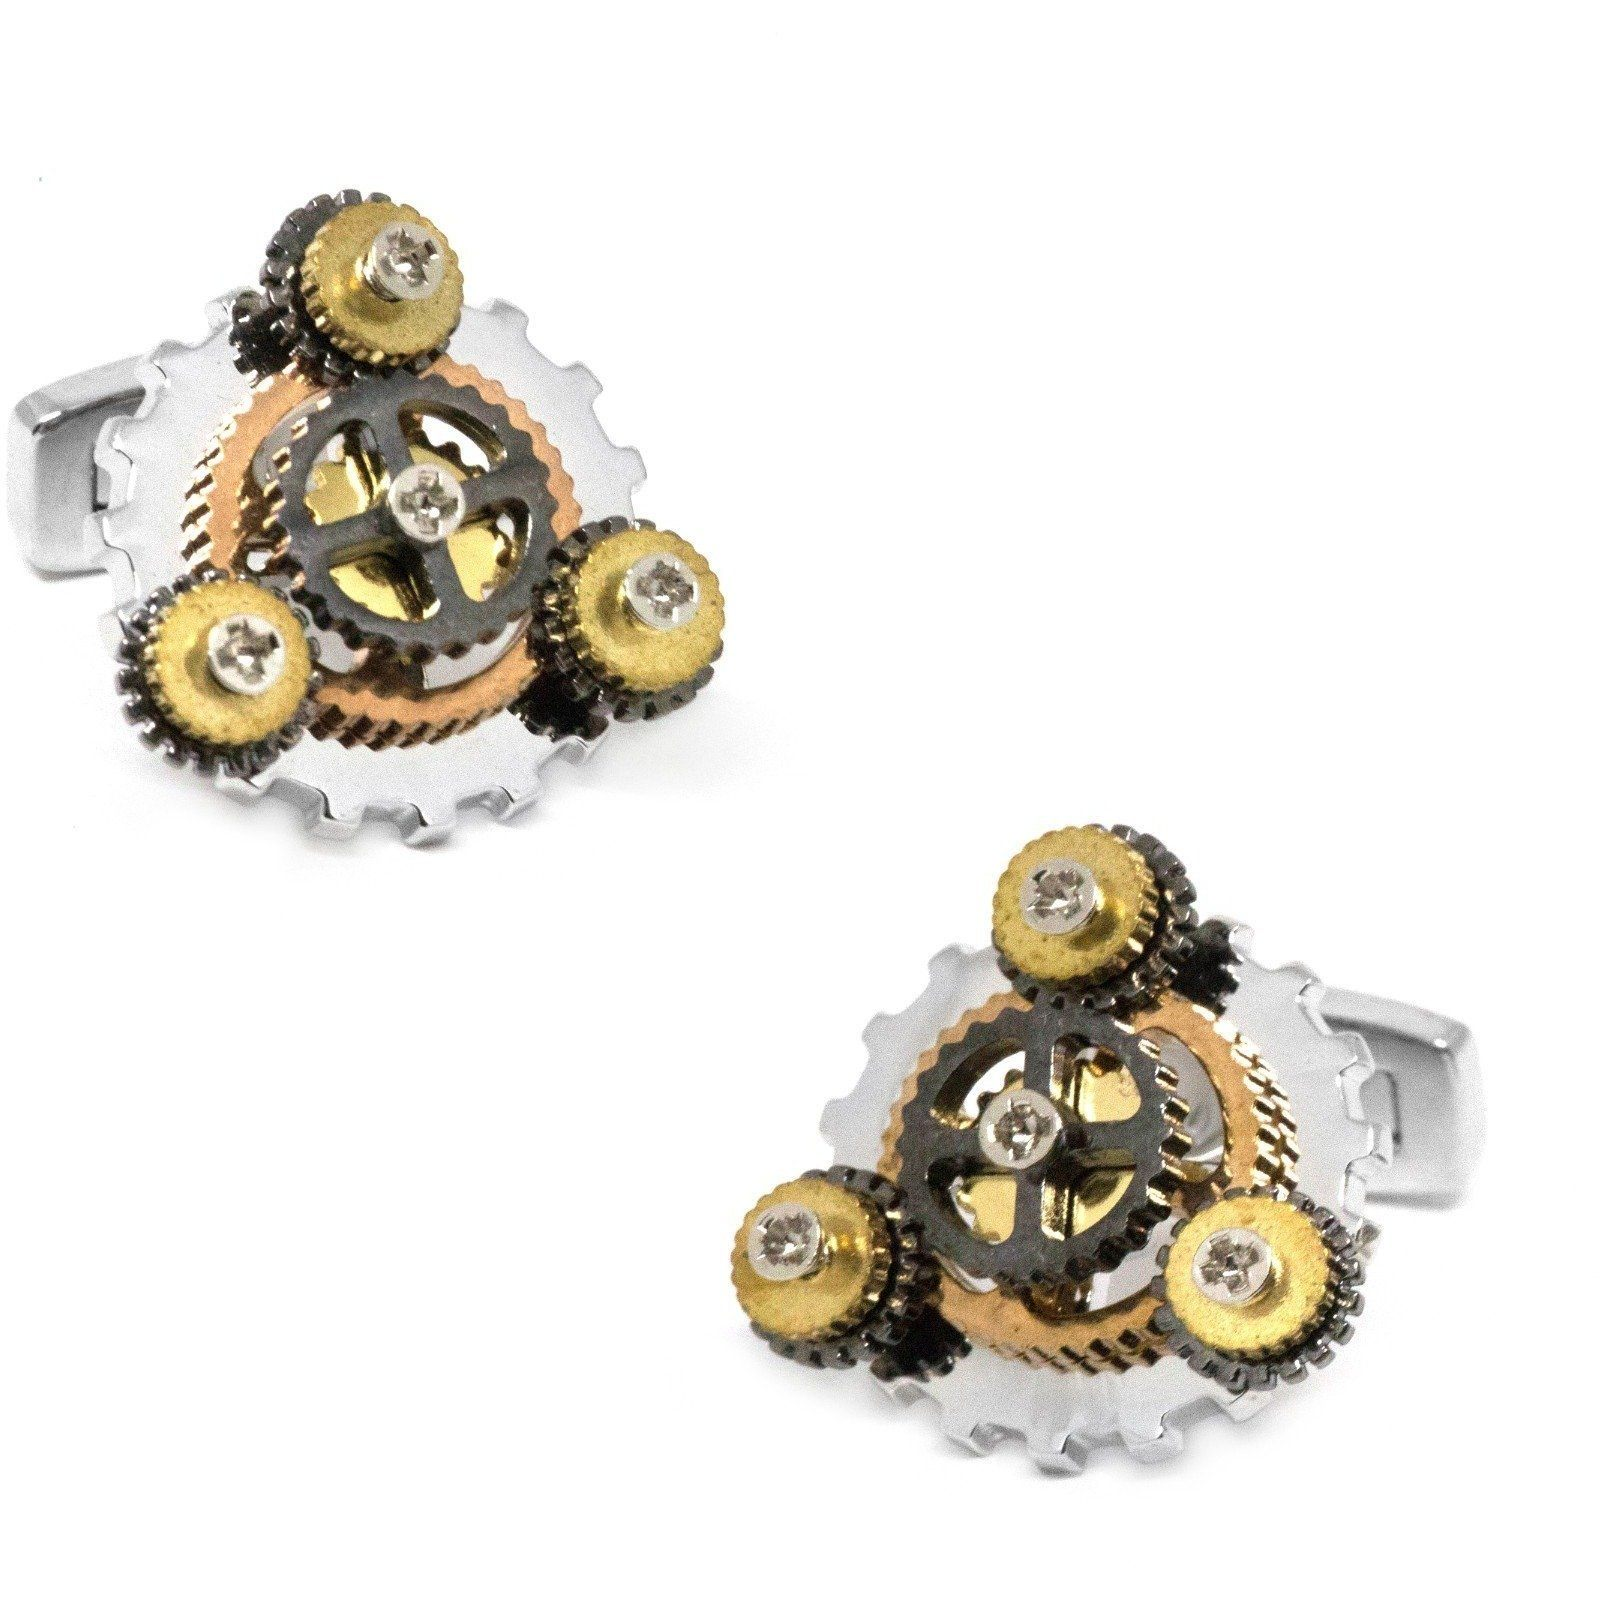 Steampunk Spinning Gear Cog Cufflinks in Multi Colour, Novelty Cufflinks, Cuffed.com.au, CL5574, $29.00